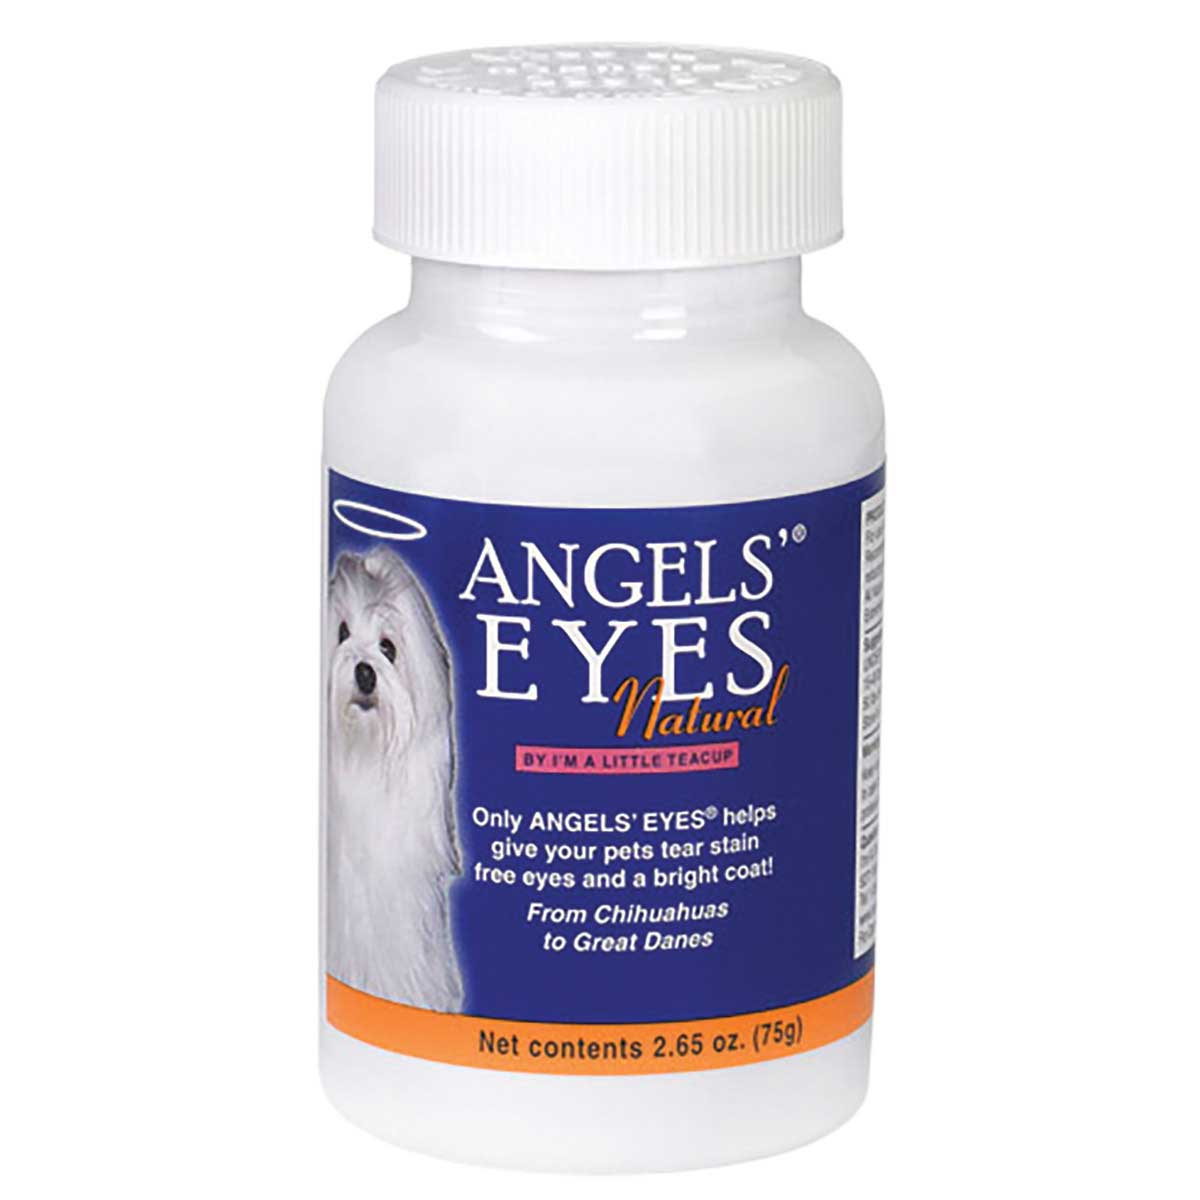 Angels' Eyes Natural Chicken Flavored Vitamins for Dogs and Cats to prevent eye stain